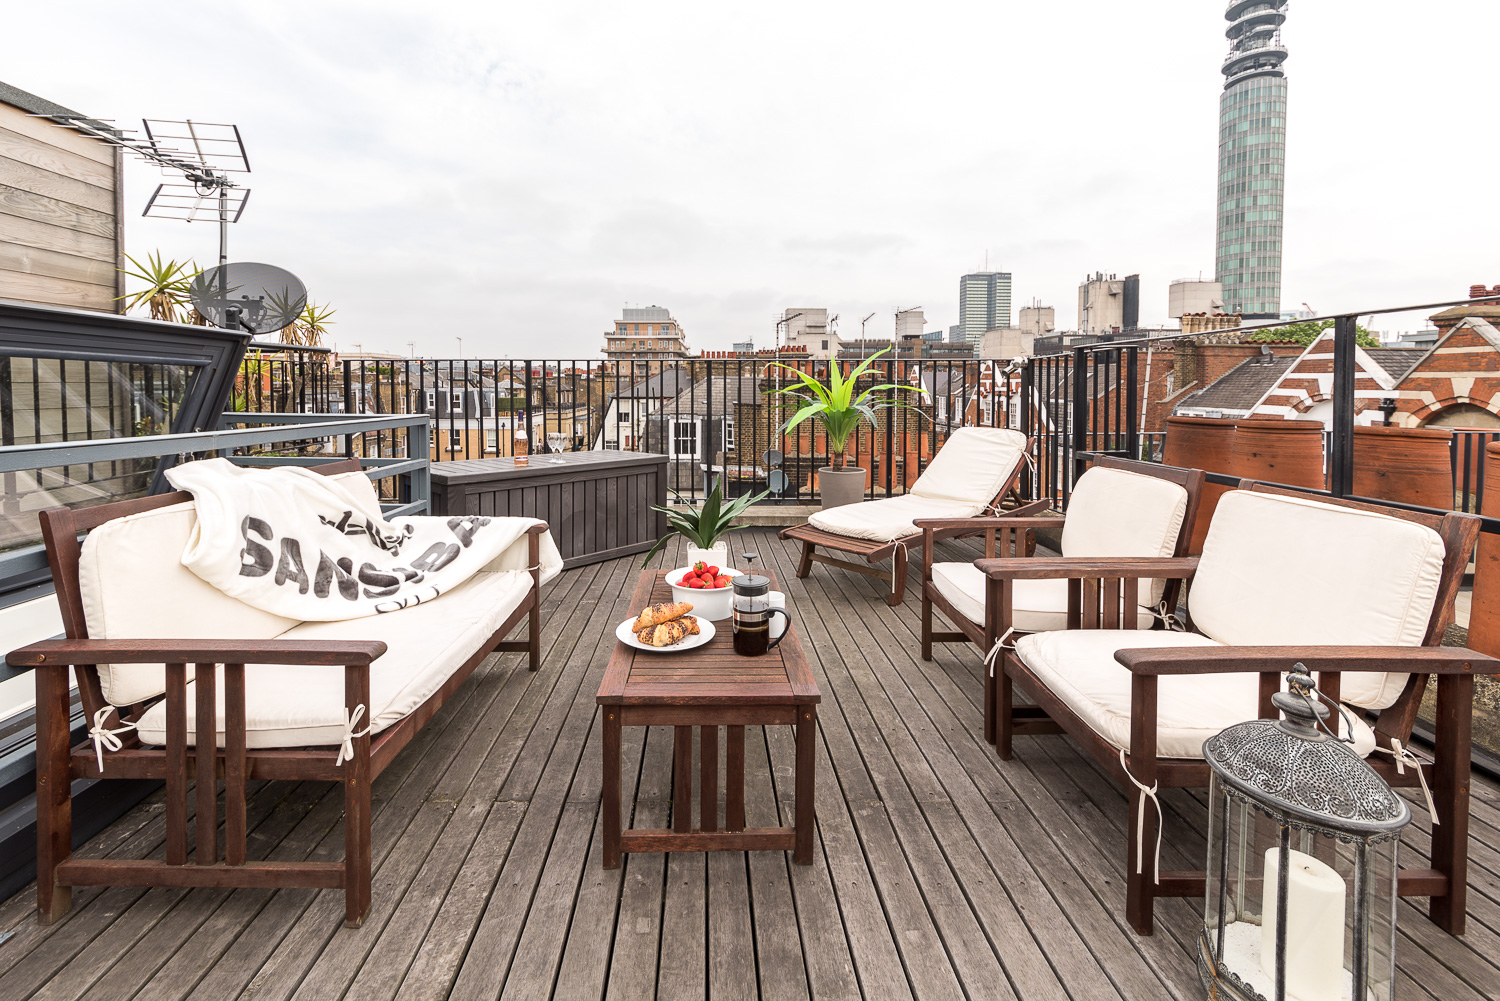 Lovelydays luxury service apartment rental - London - Fitzrovia - Foley Street II - Lovelysuite - 2 bedrooms - 2 bathrooms - Roof top central London - 034ce6b13bbb - Lovelydays